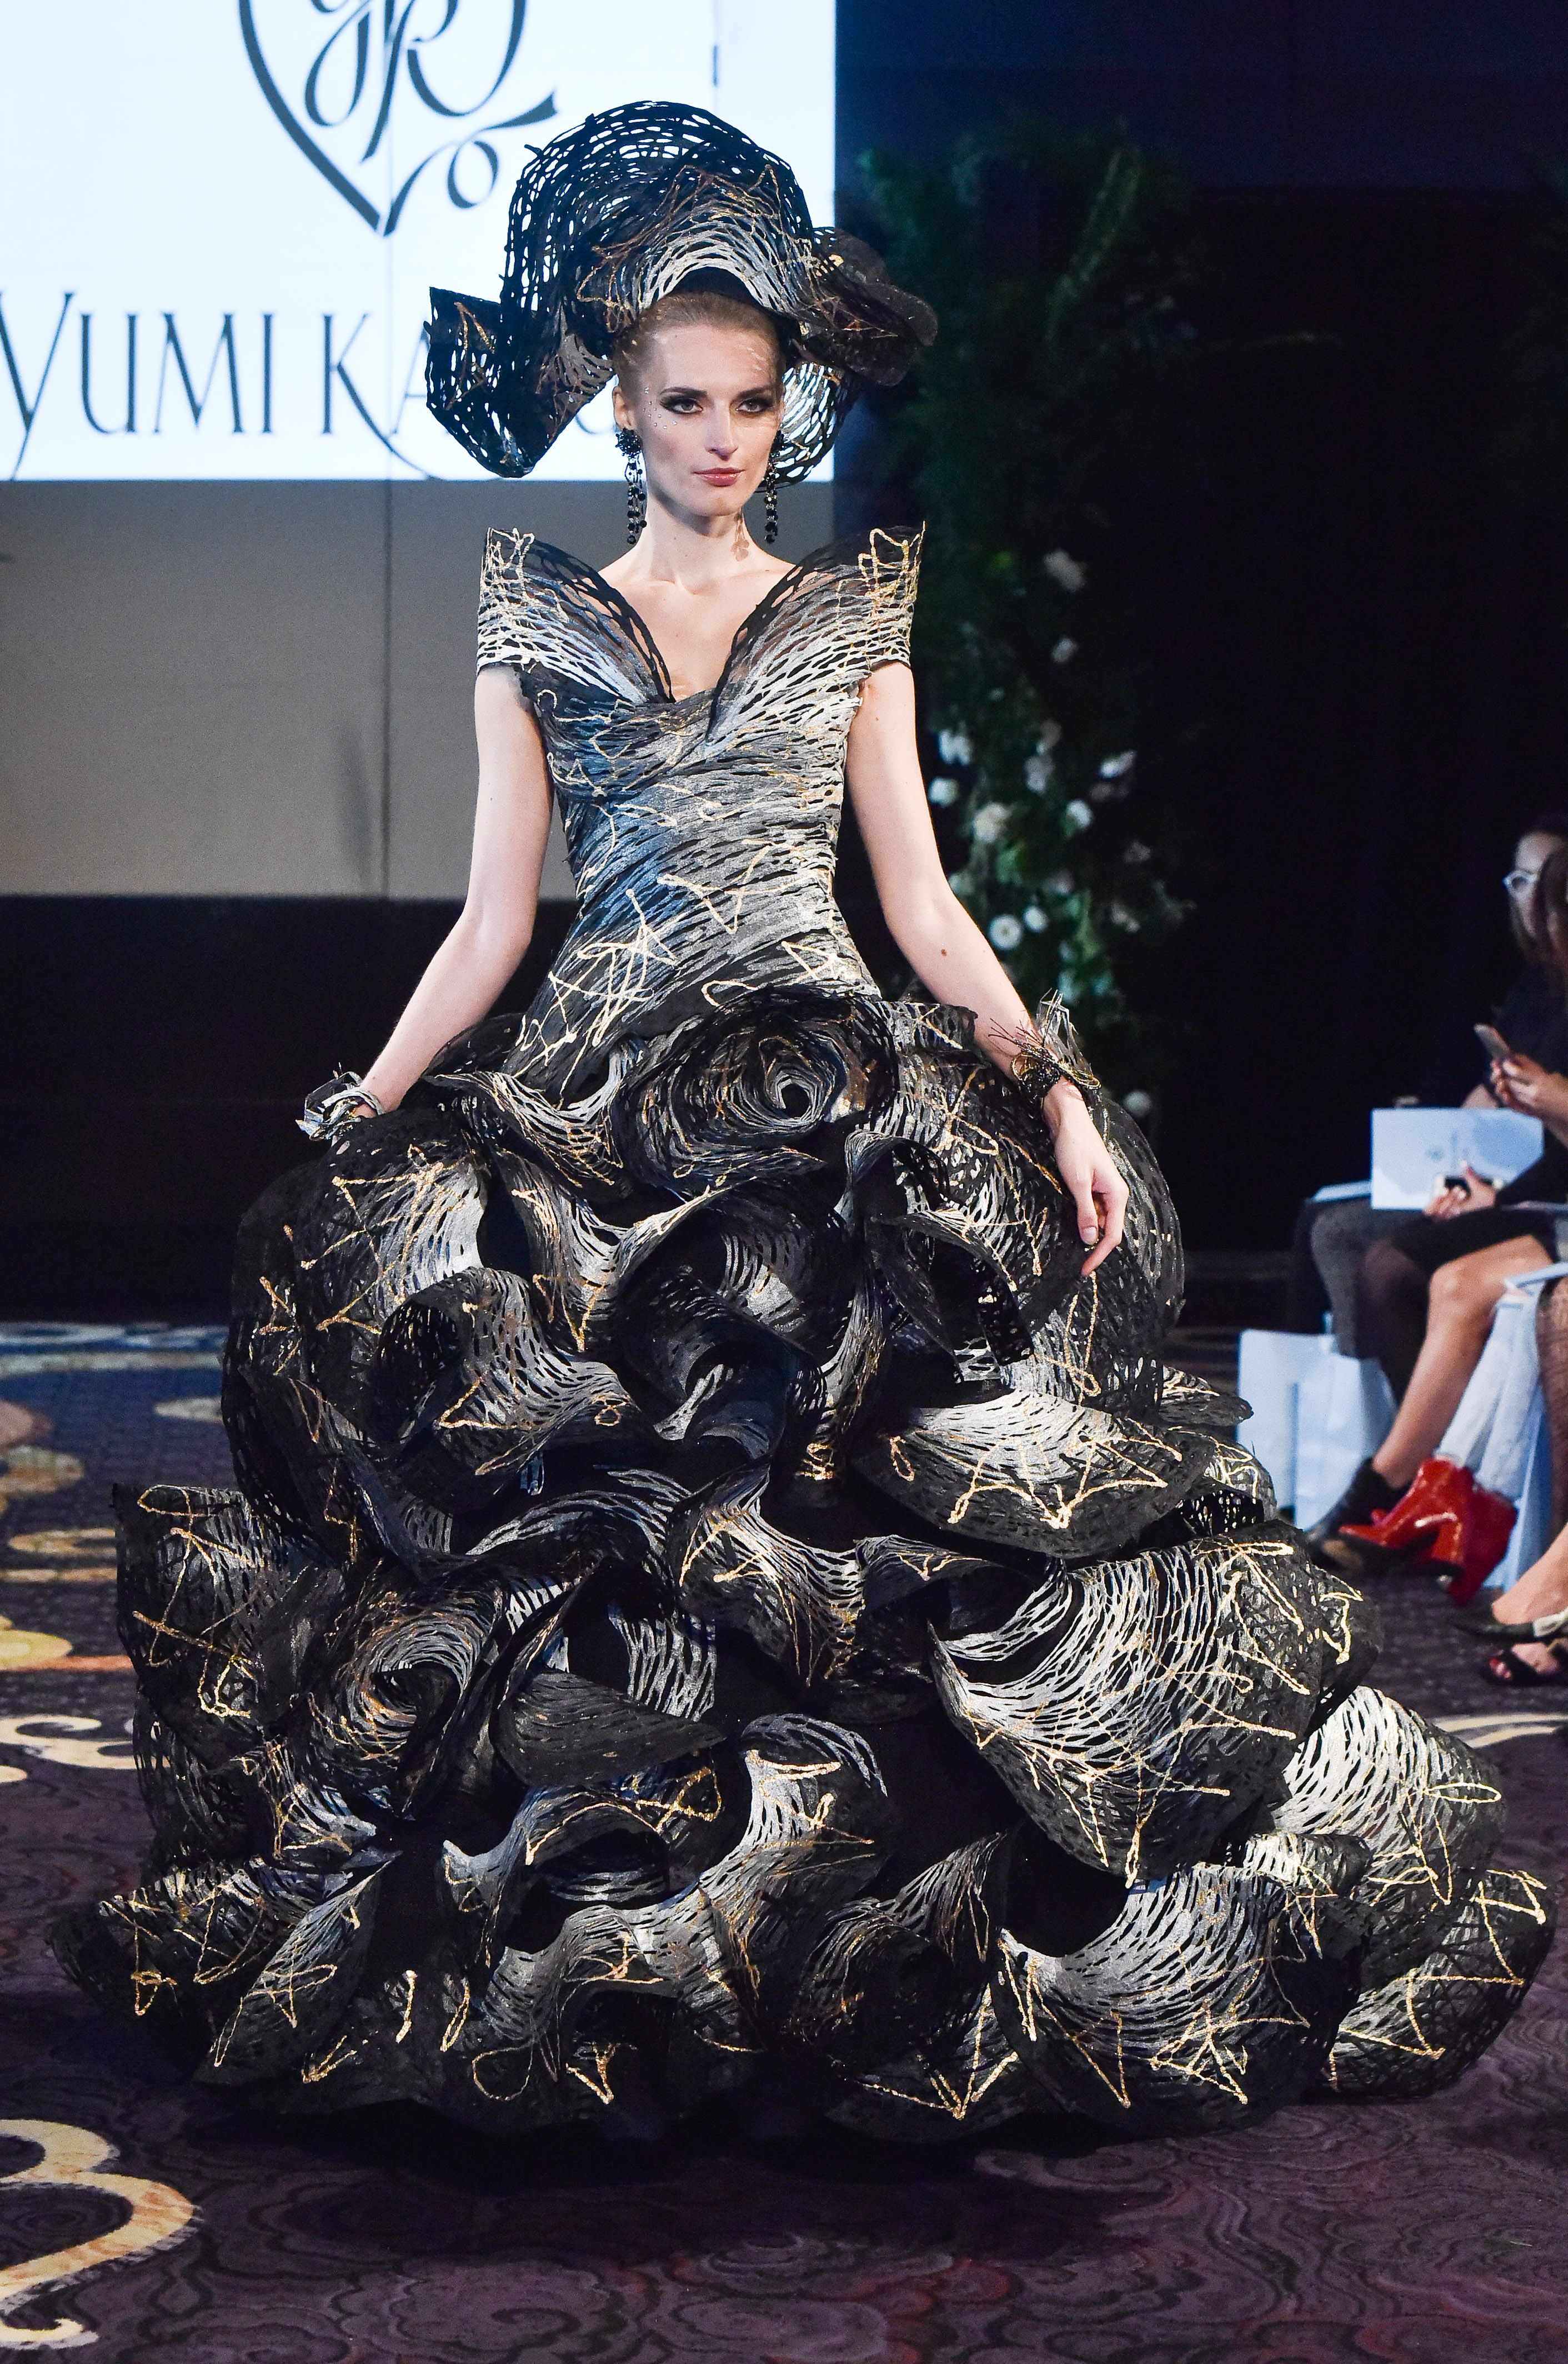 yumi katsura black wedding and white ruffle dress fall 2018